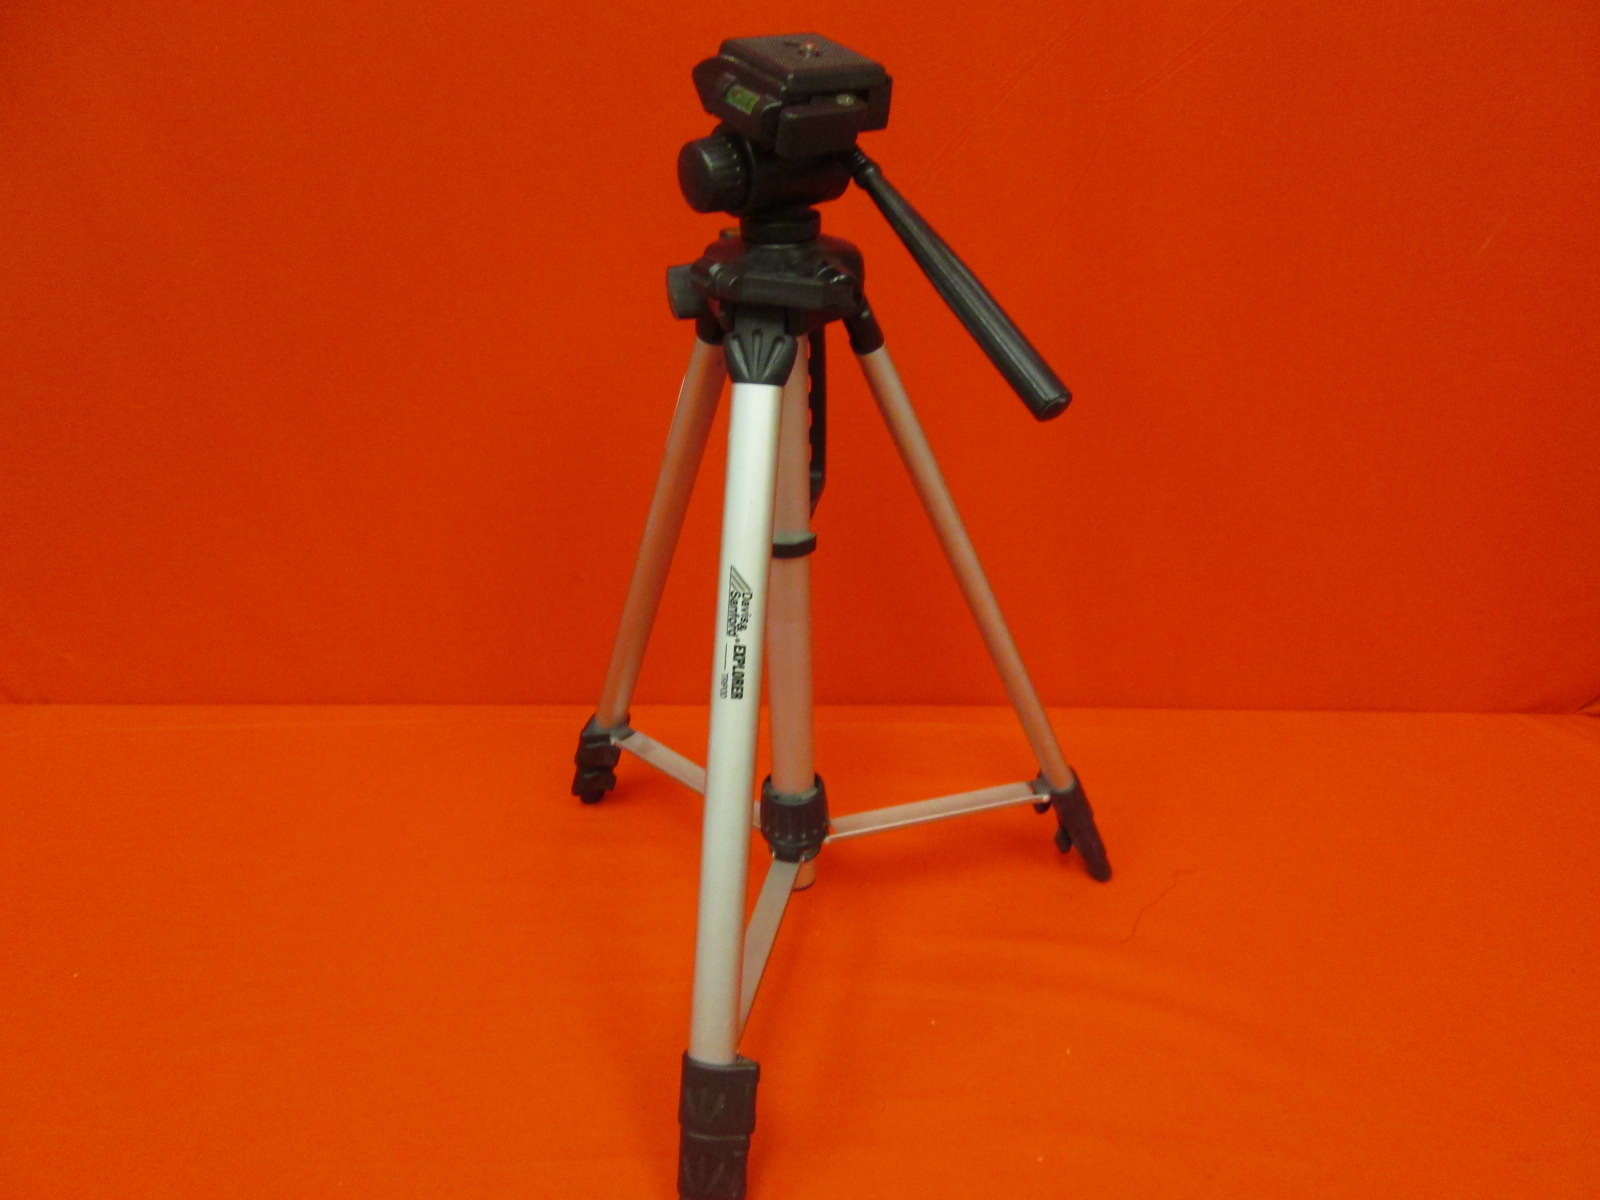 Davis And Sanford Explorer Vista 60-inch Tripod For Cameras And